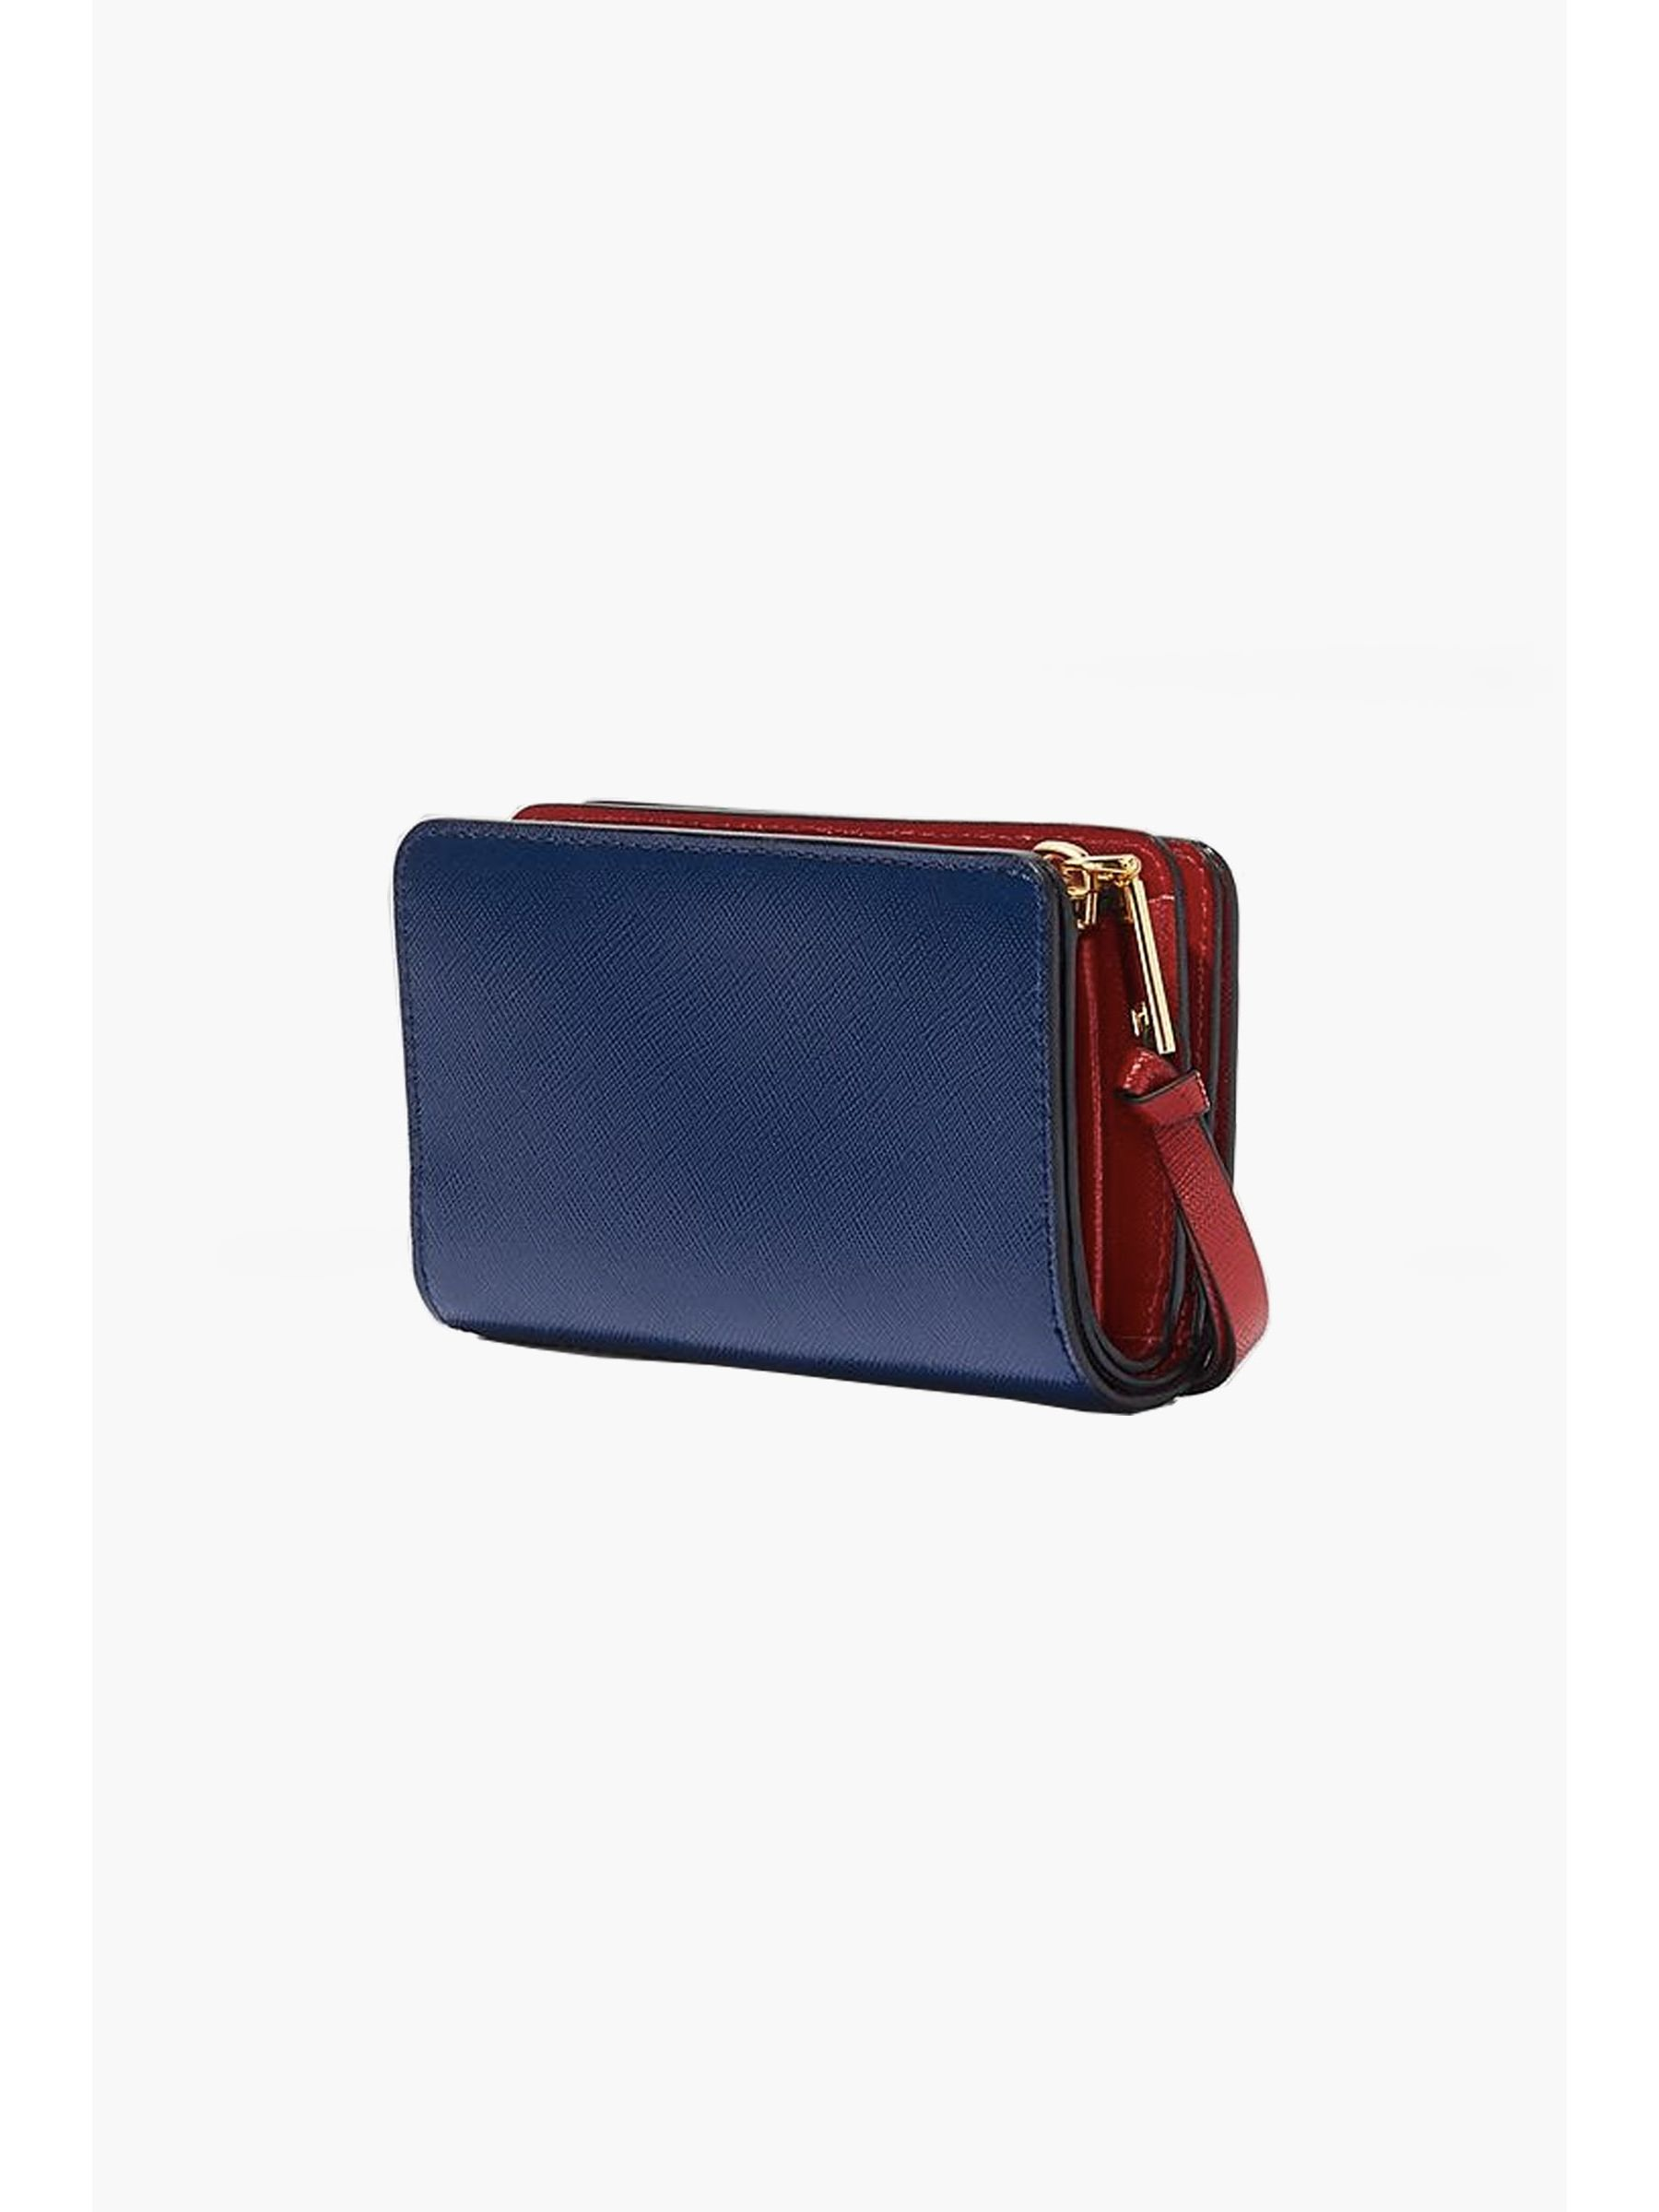 111013047_Marc_Jacobs_The_Snapshop_Compact_Wallet_b.jpg